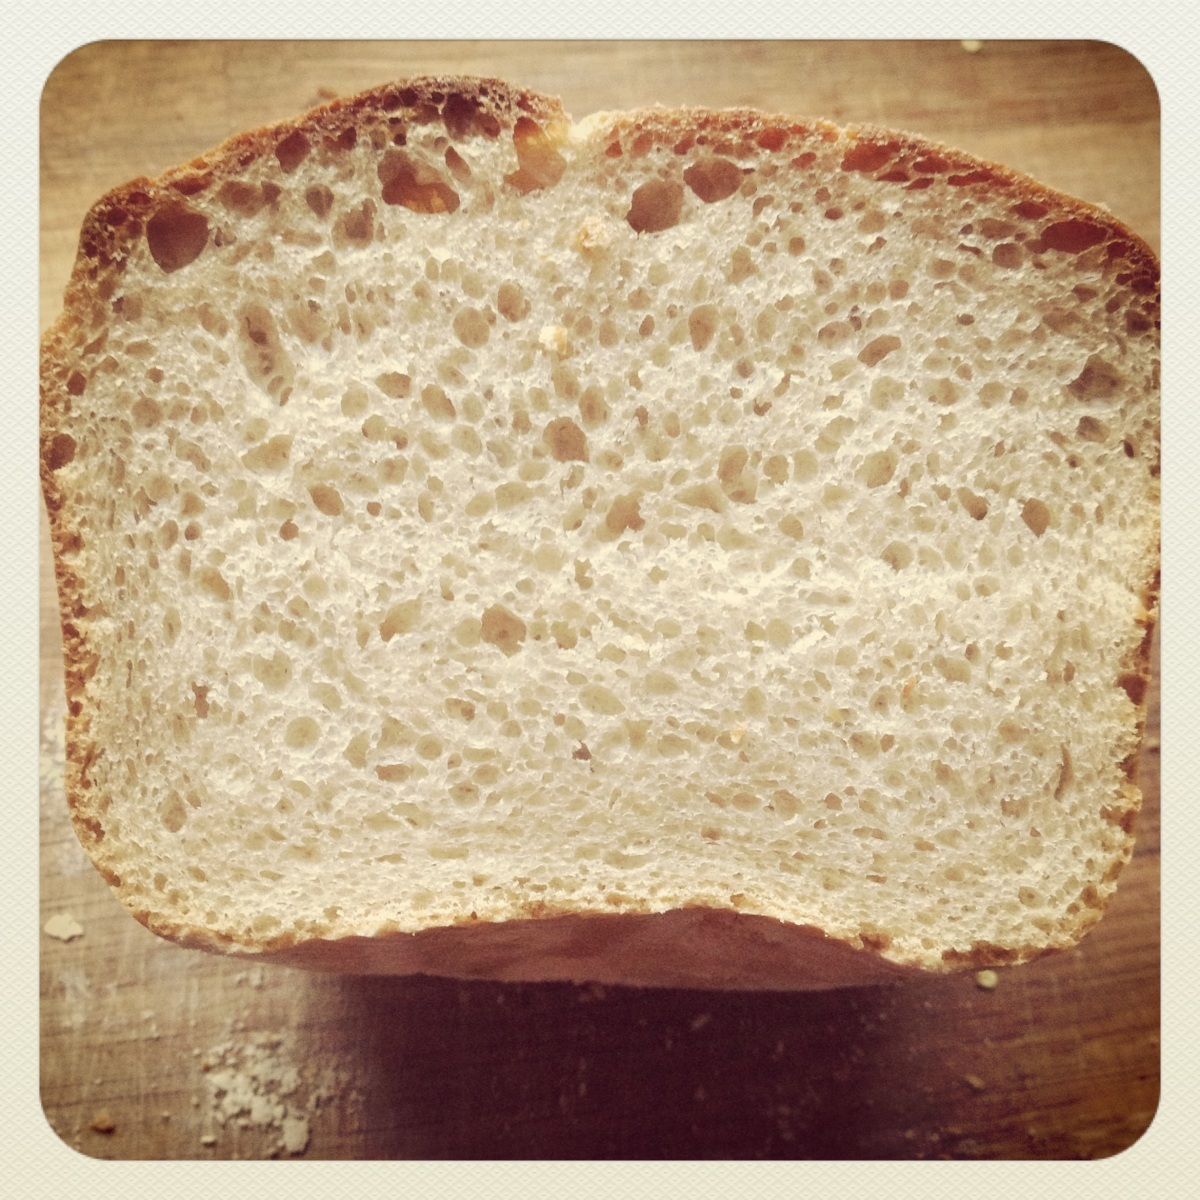 An introduction to 'Dave' the sourdough starter